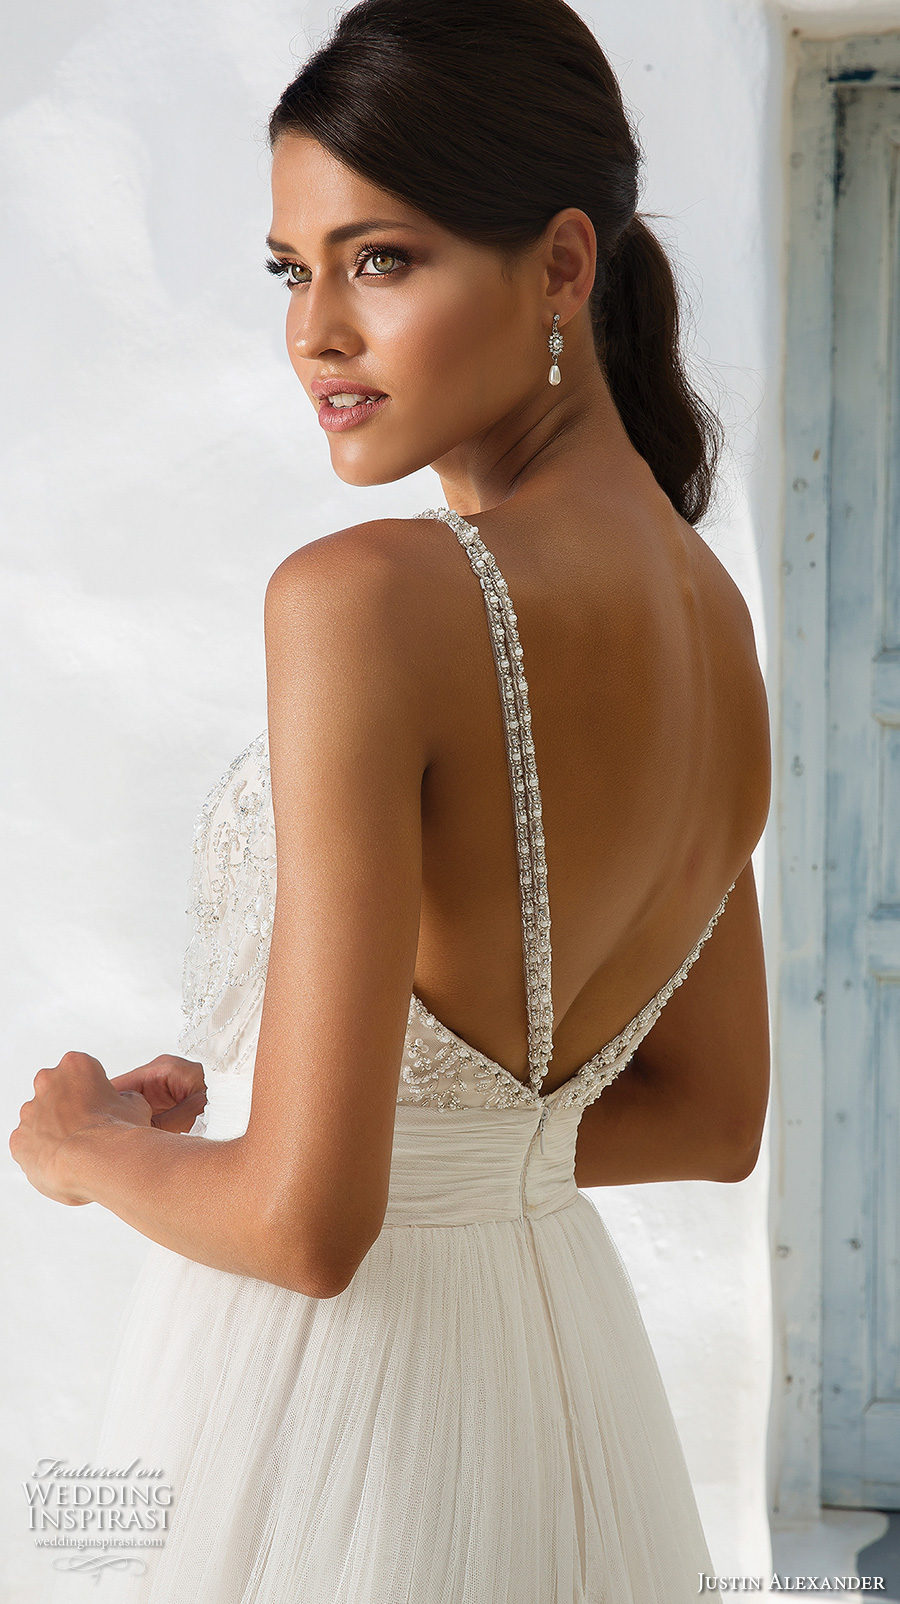 justin alexander 2018 bridal thin strap sweetheart neckline heavily embellished bodice romantic soft a  line wedding dress open v back medium train (8) zbv